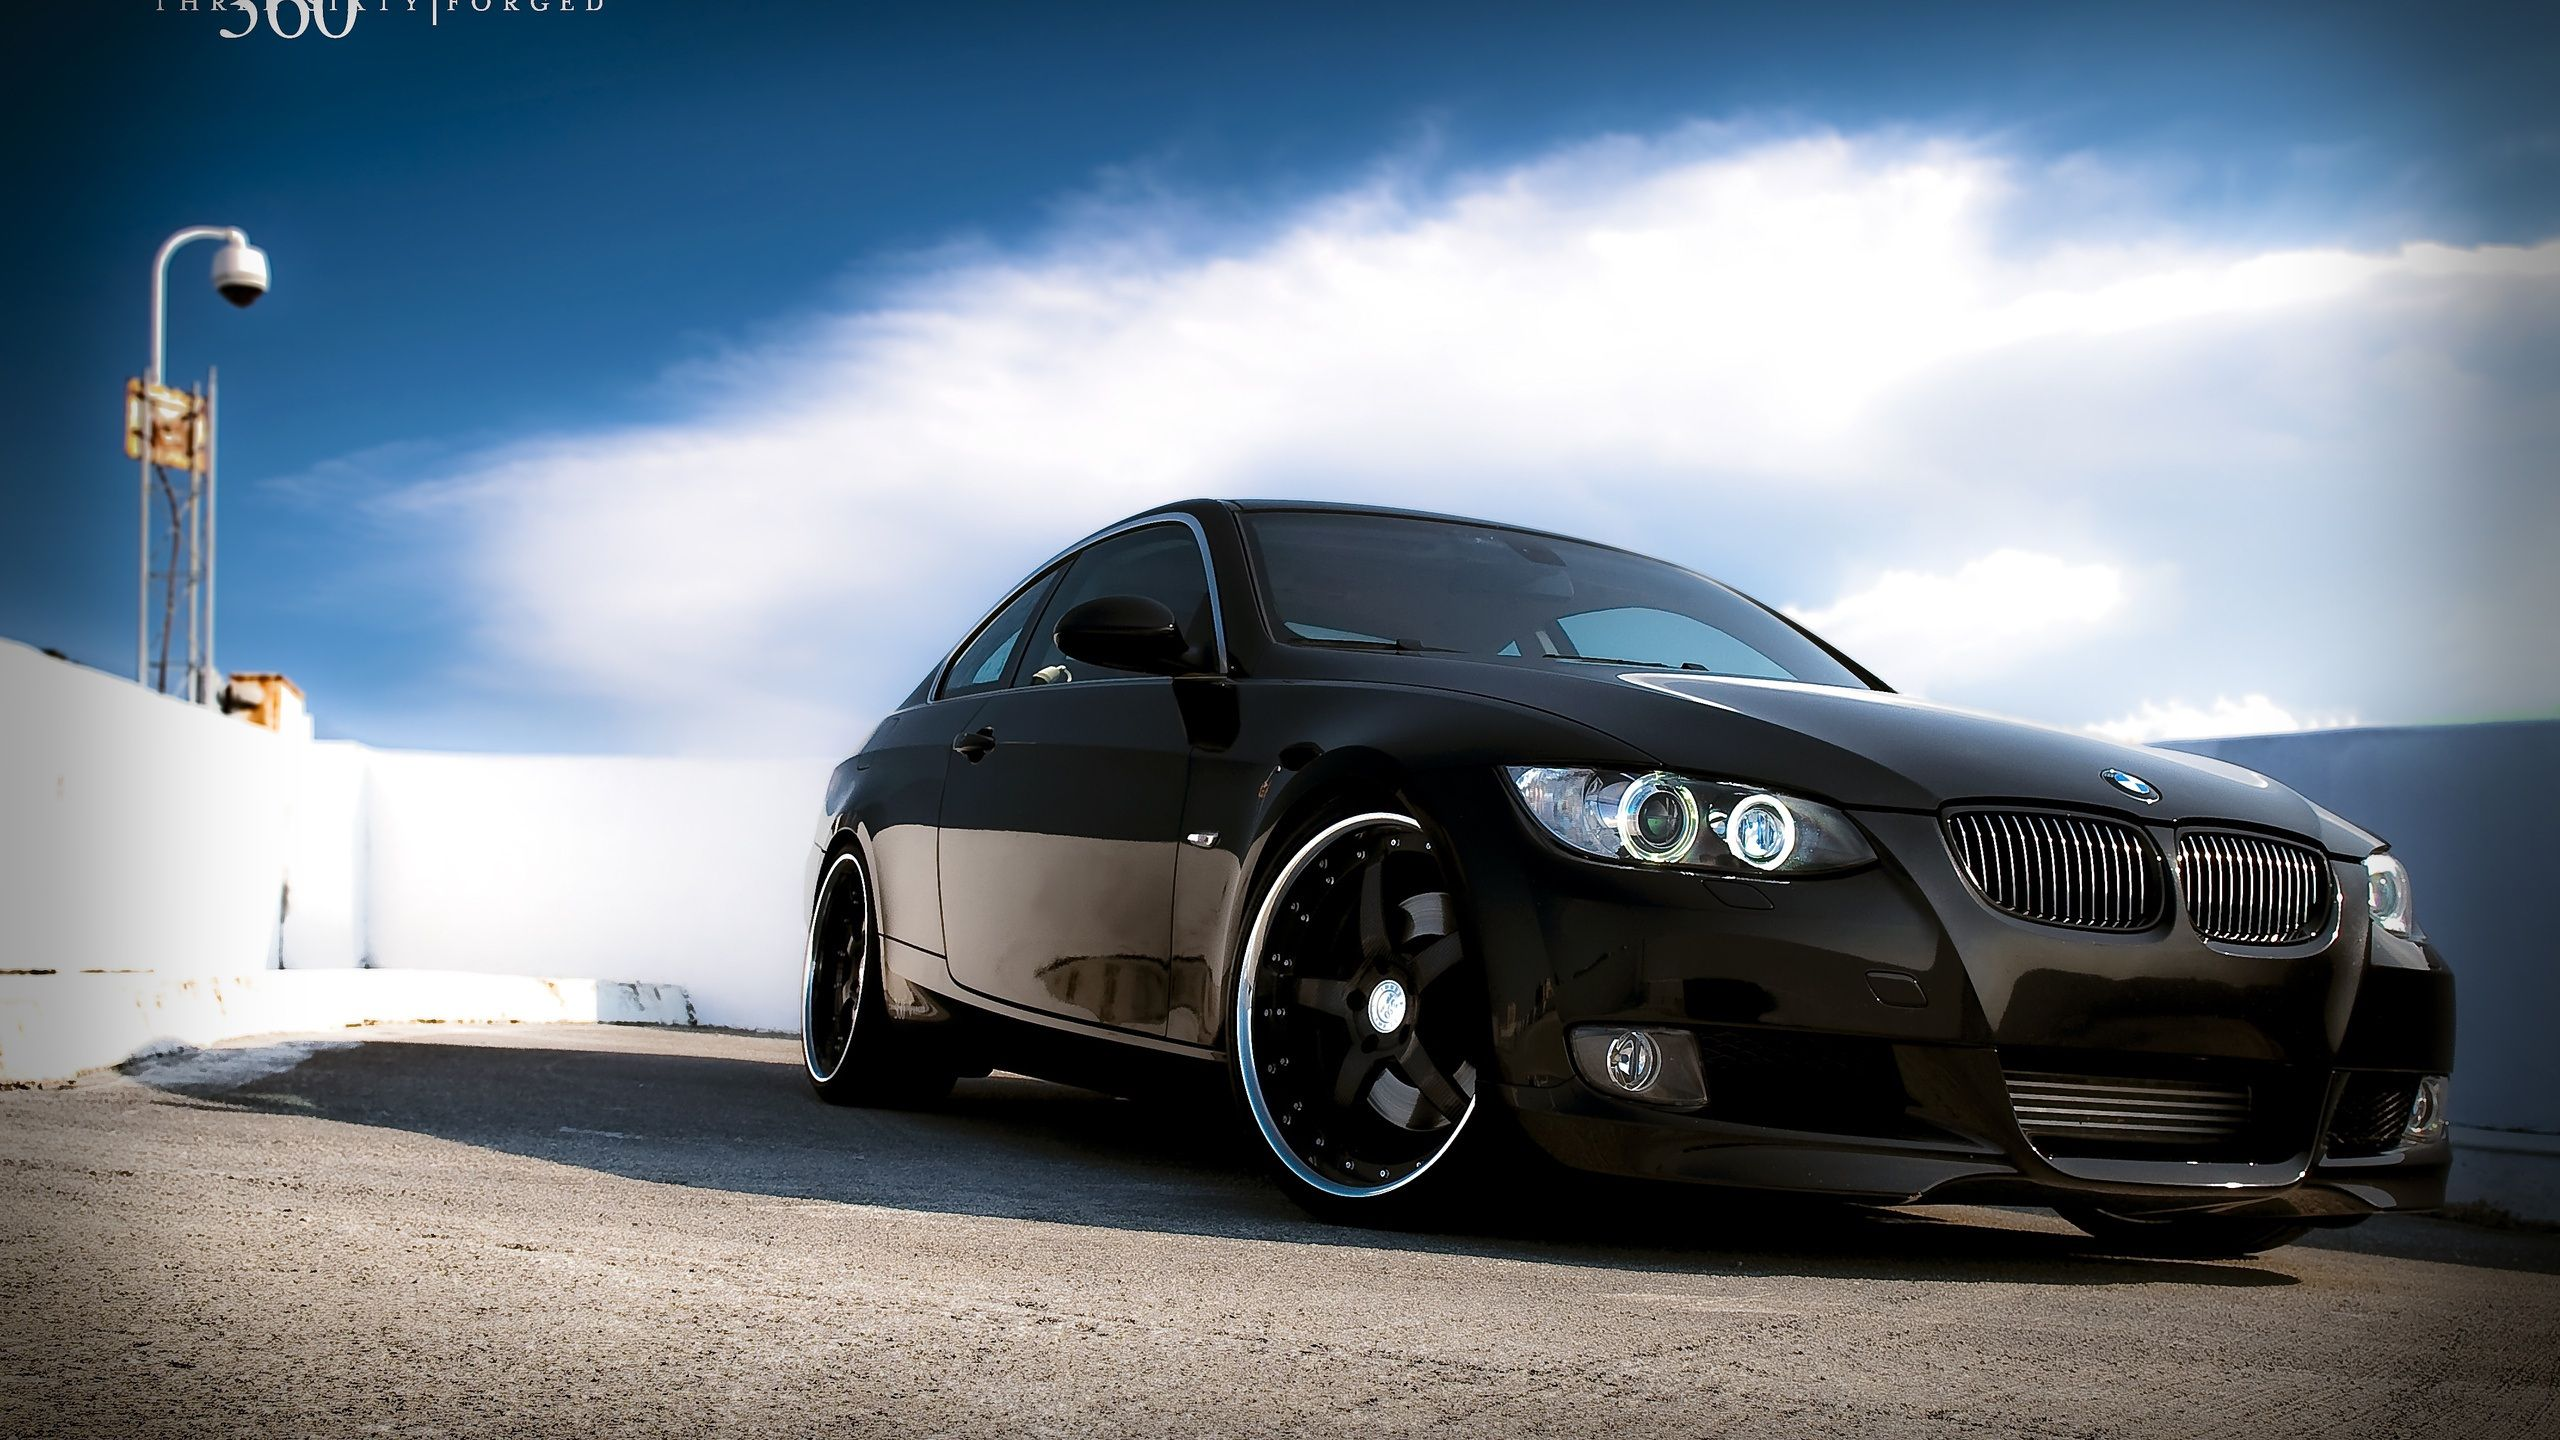 bmw, cars, 2560x1440 hd wallpaper and free stock photo | download